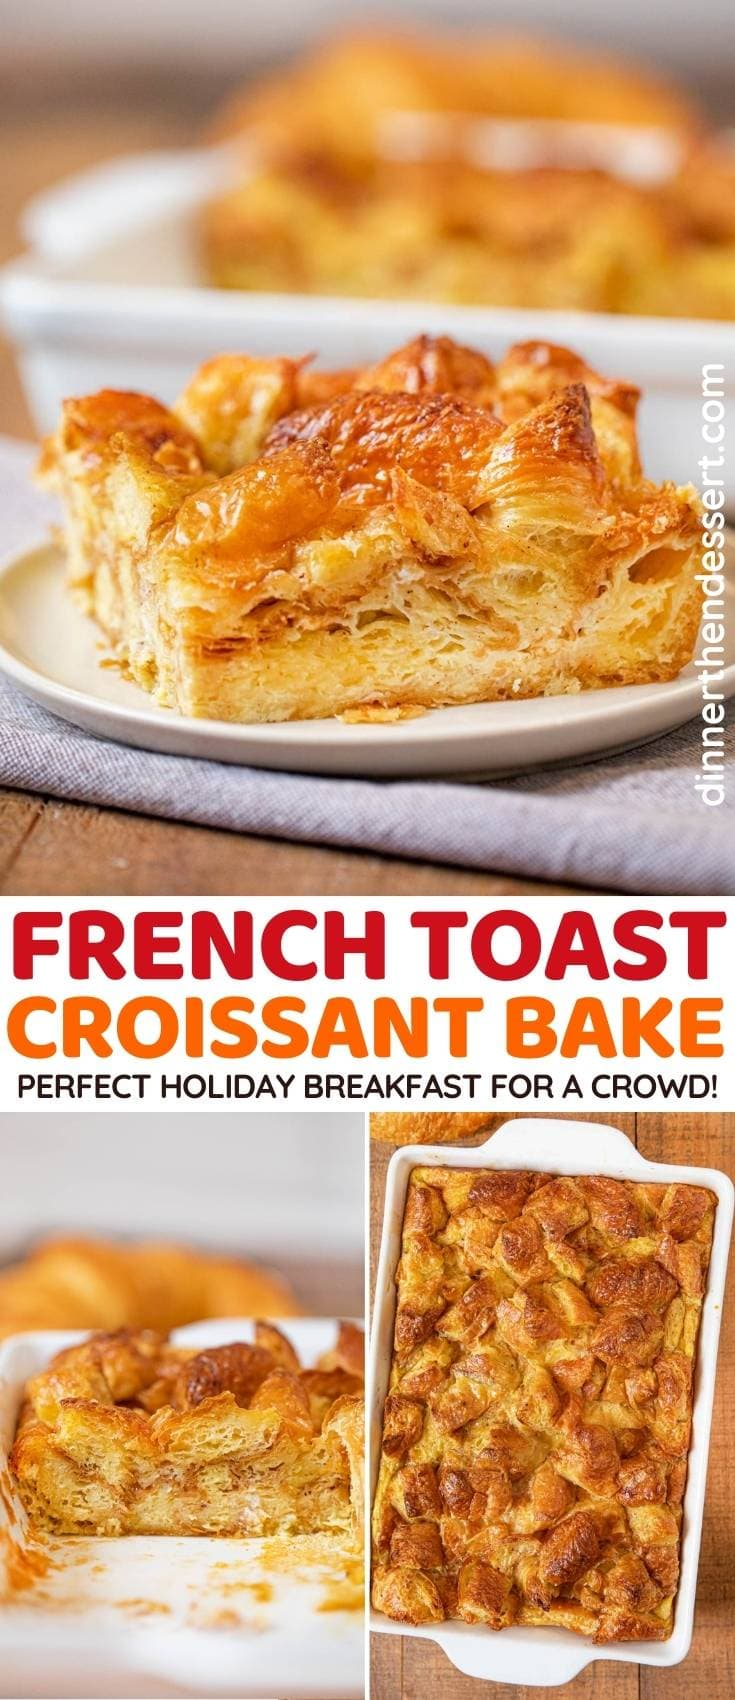 Croissant French Toast Bake collage